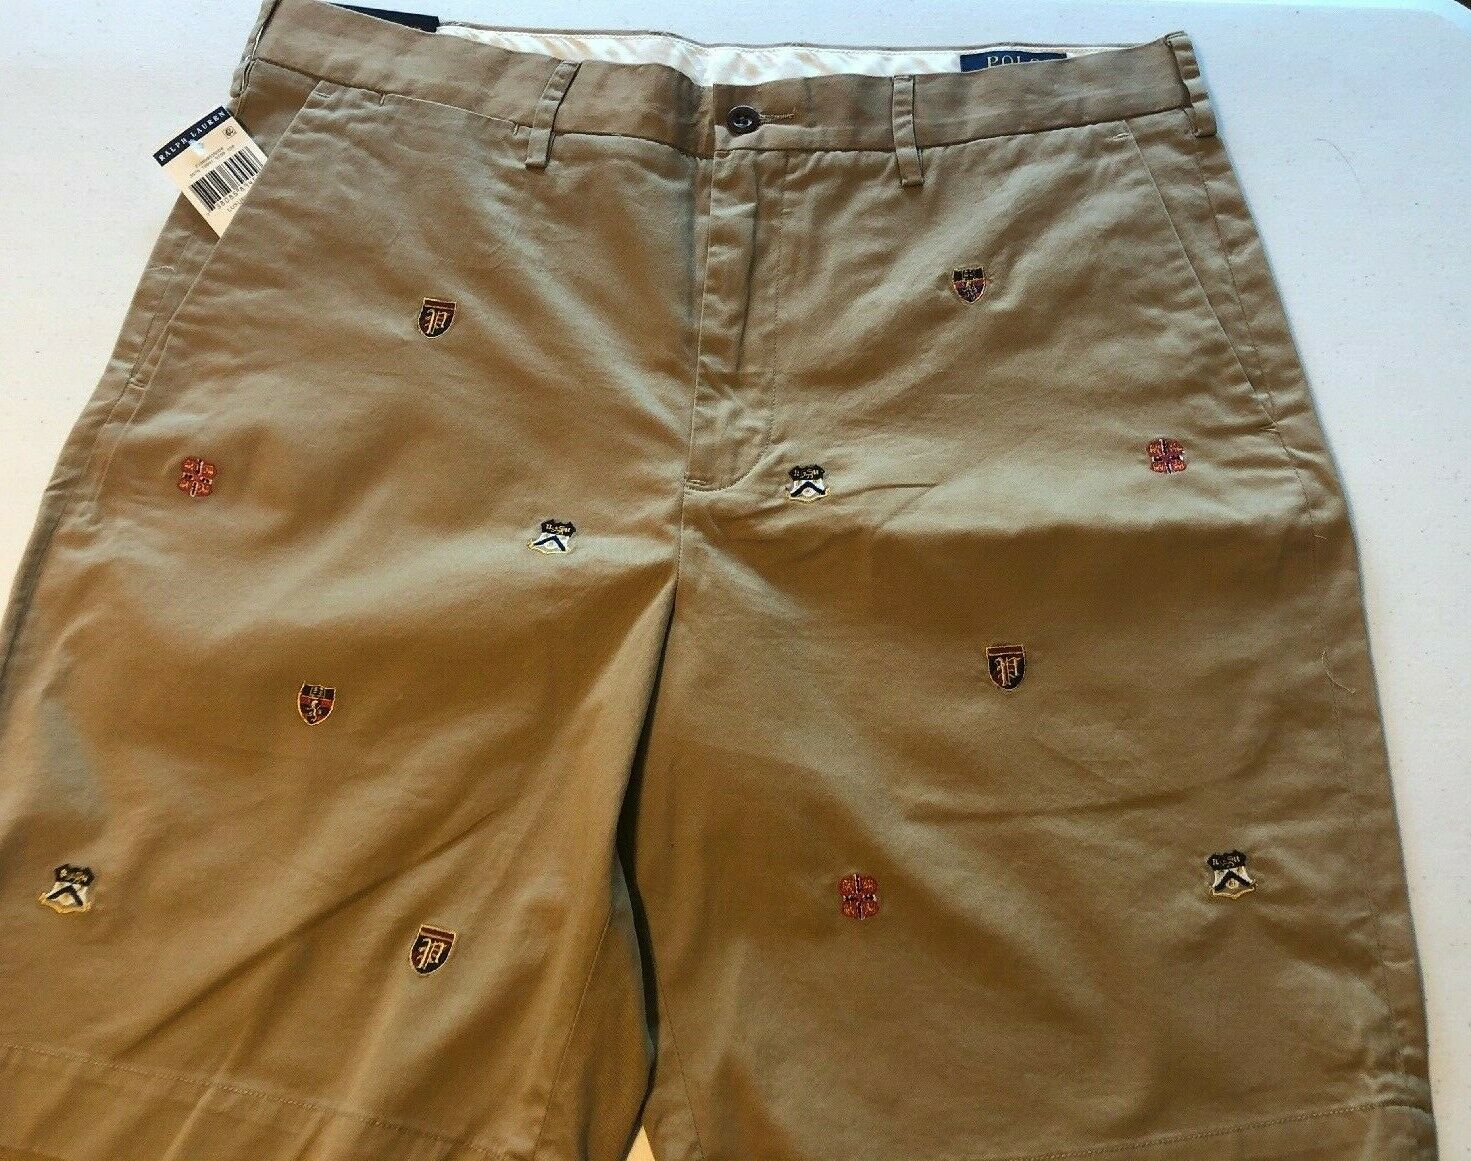 Ralph Lauren Polo Men's 29 31 34 Luxury Tan Embroidered Crest Shorts Classic  9